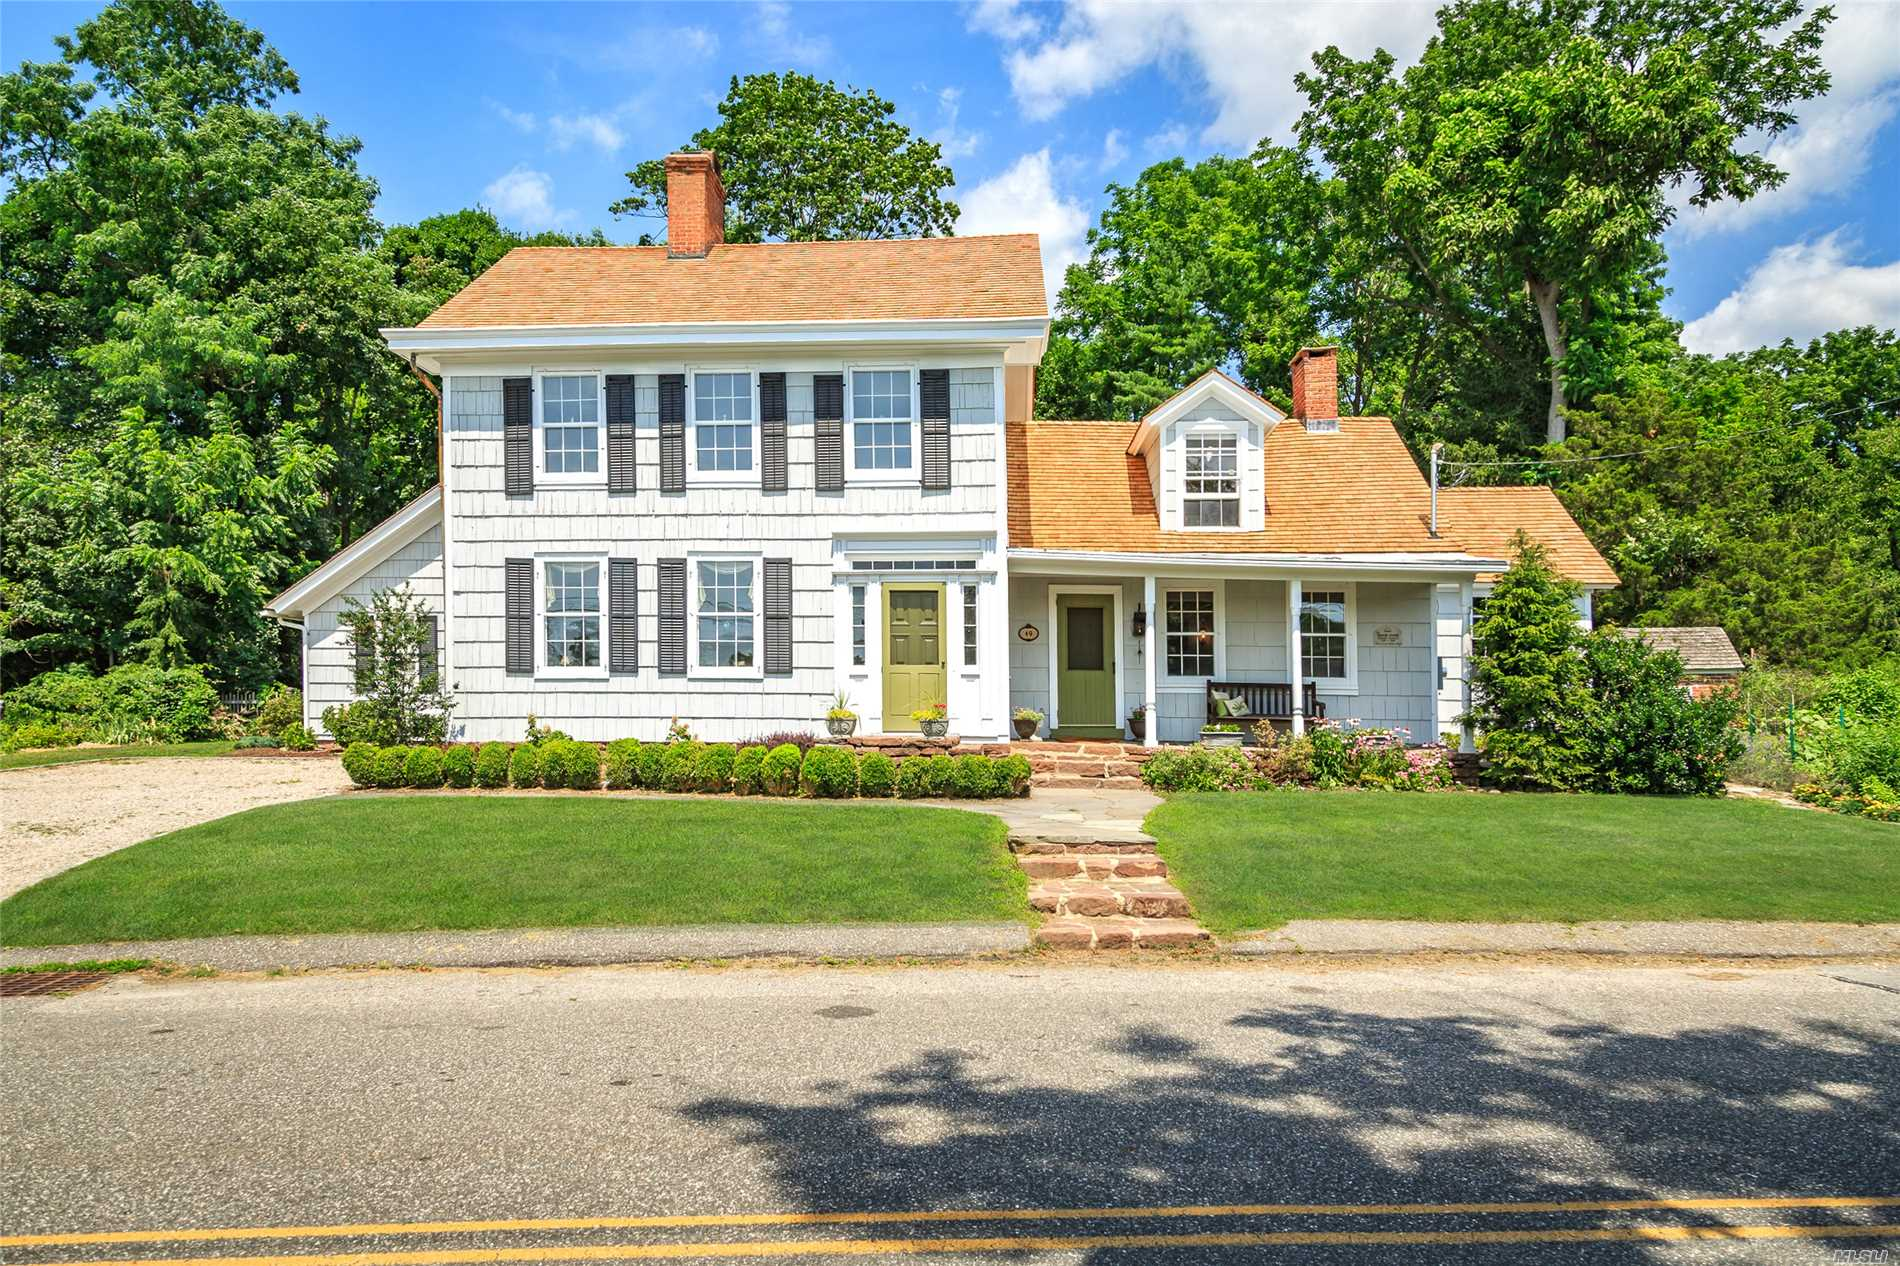 Photo of home for sale at 49 Shore Rd, East Setauket NY